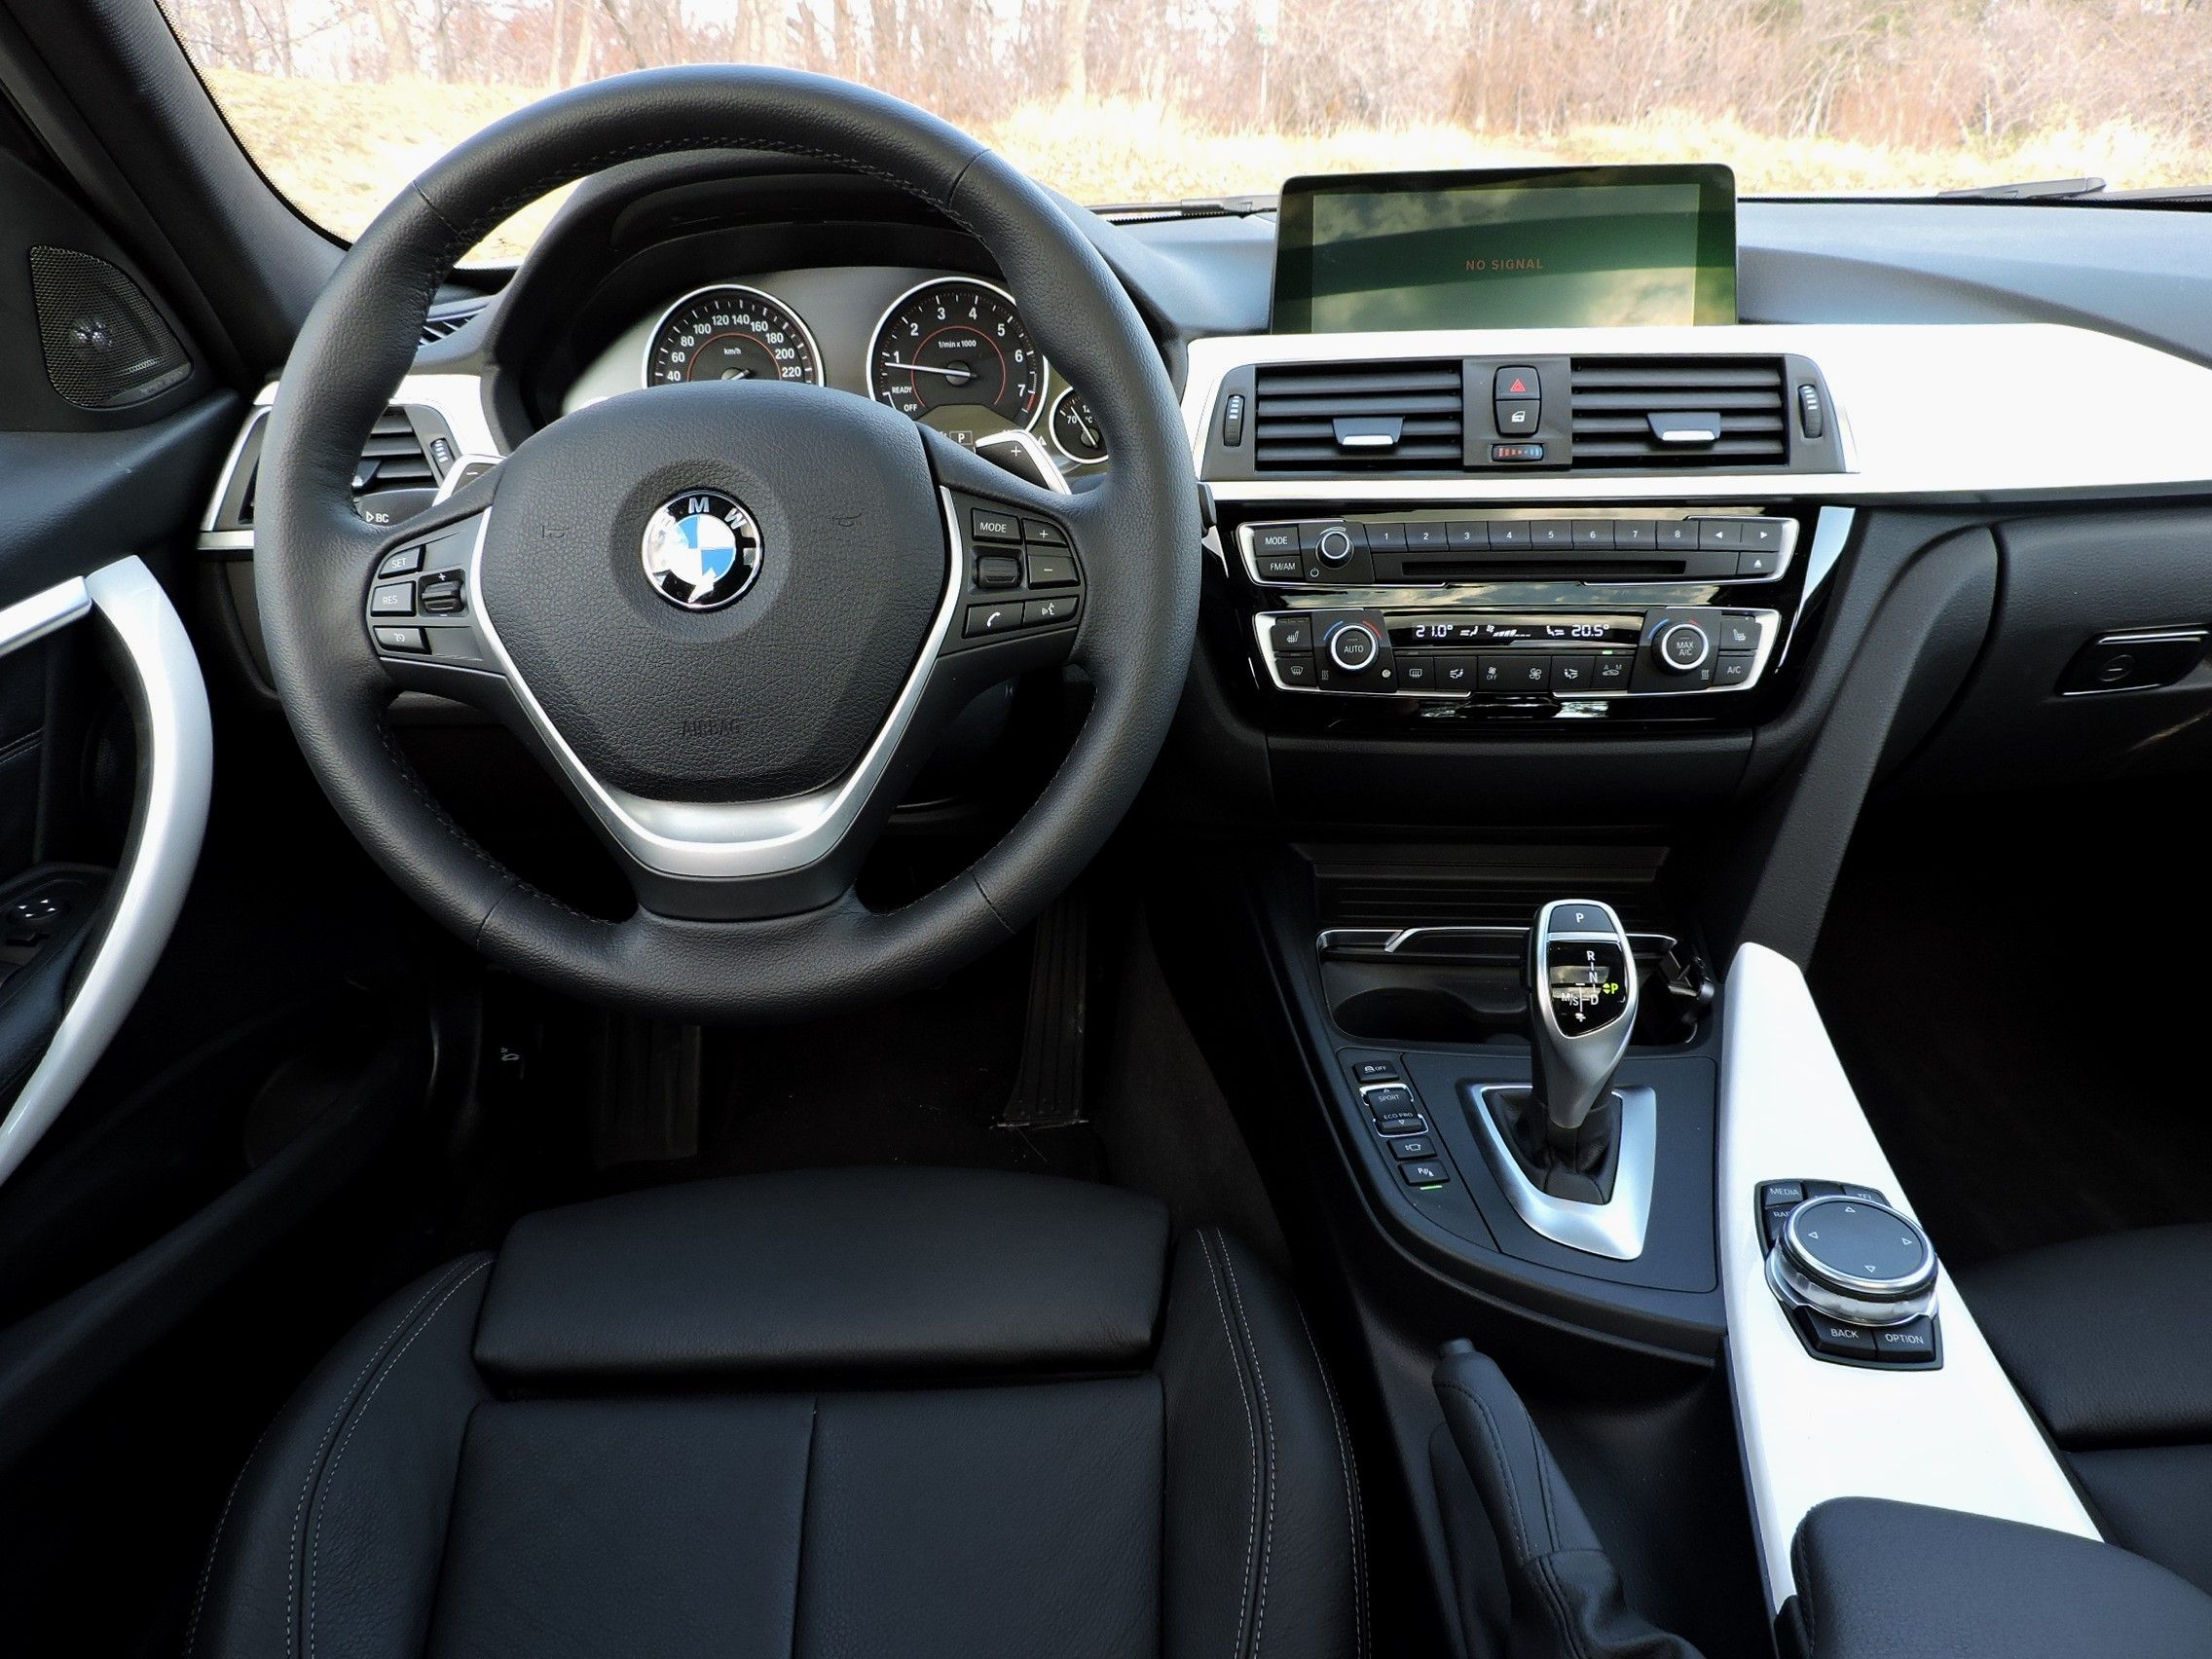 Image for 2016 bmw 328i xdrive sports wagon review bm0145